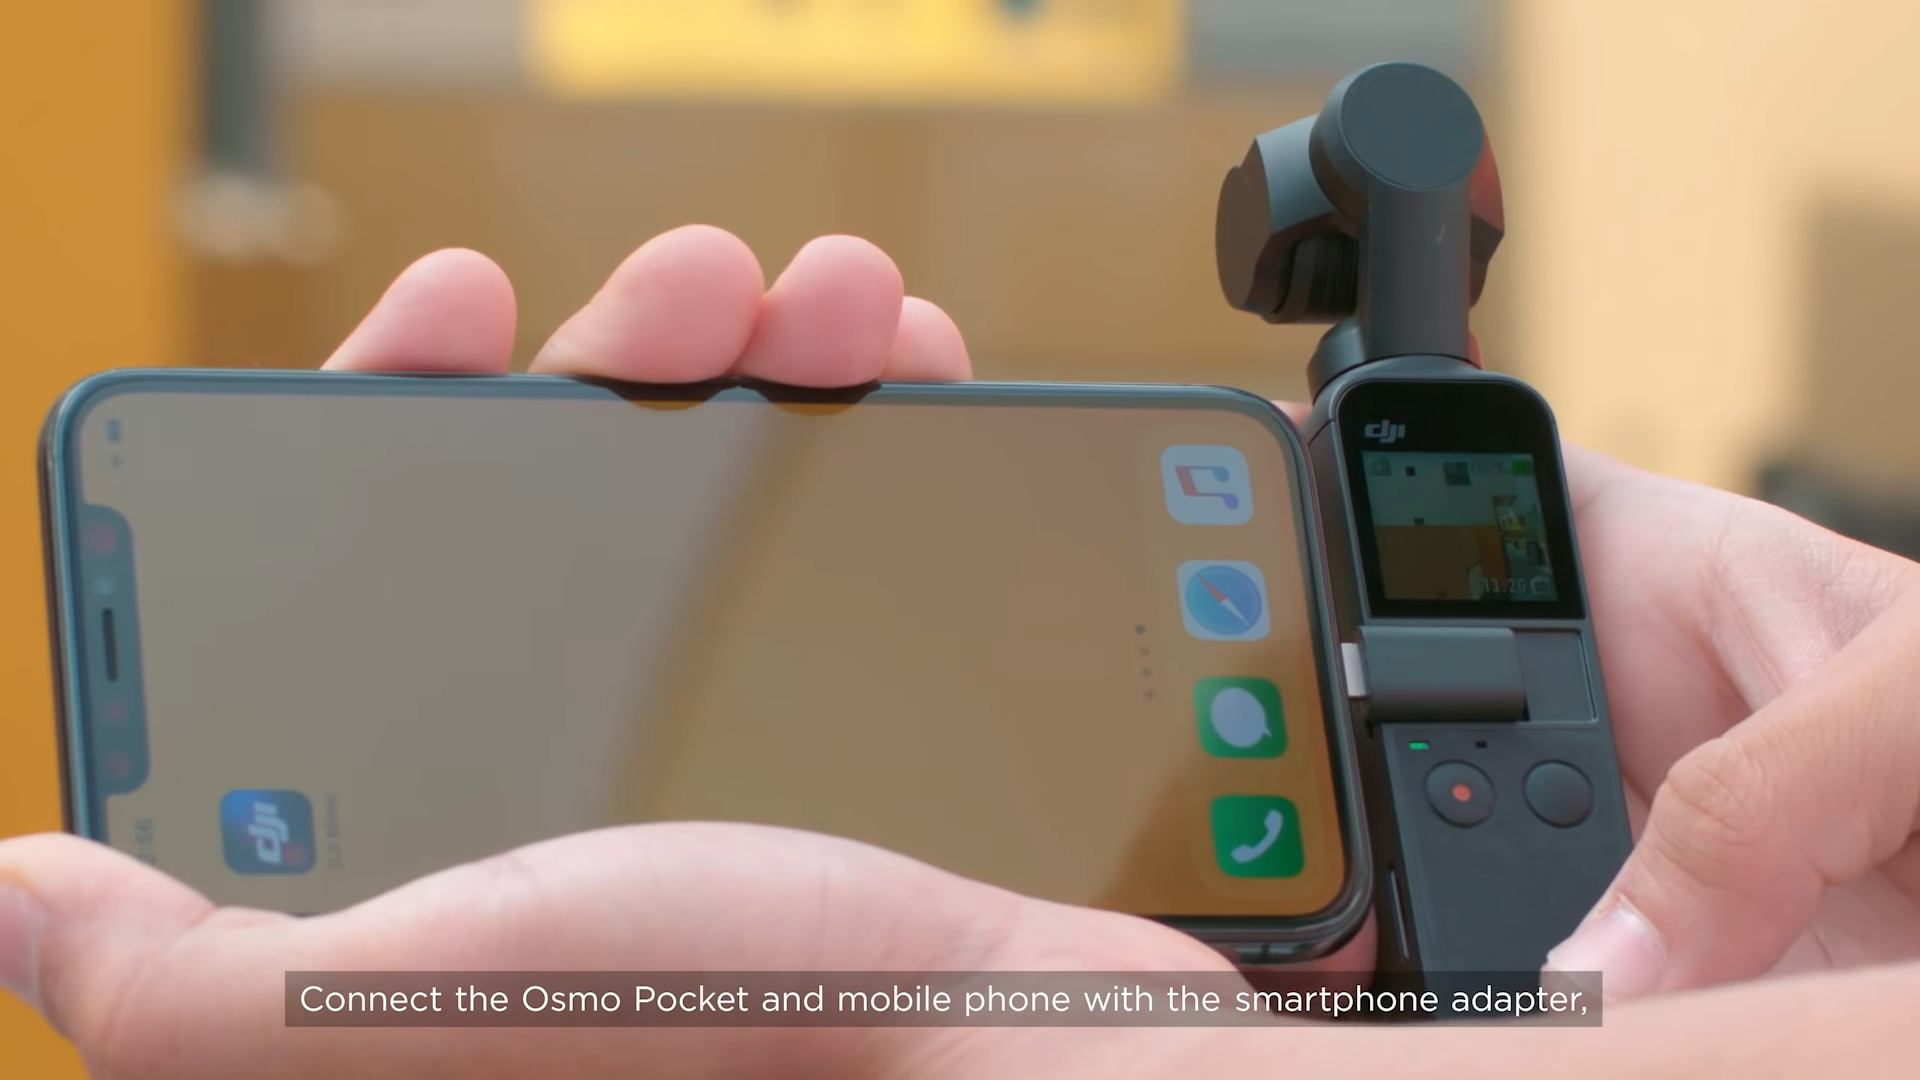 dji osmo pocket story mode feature on dji mimo app